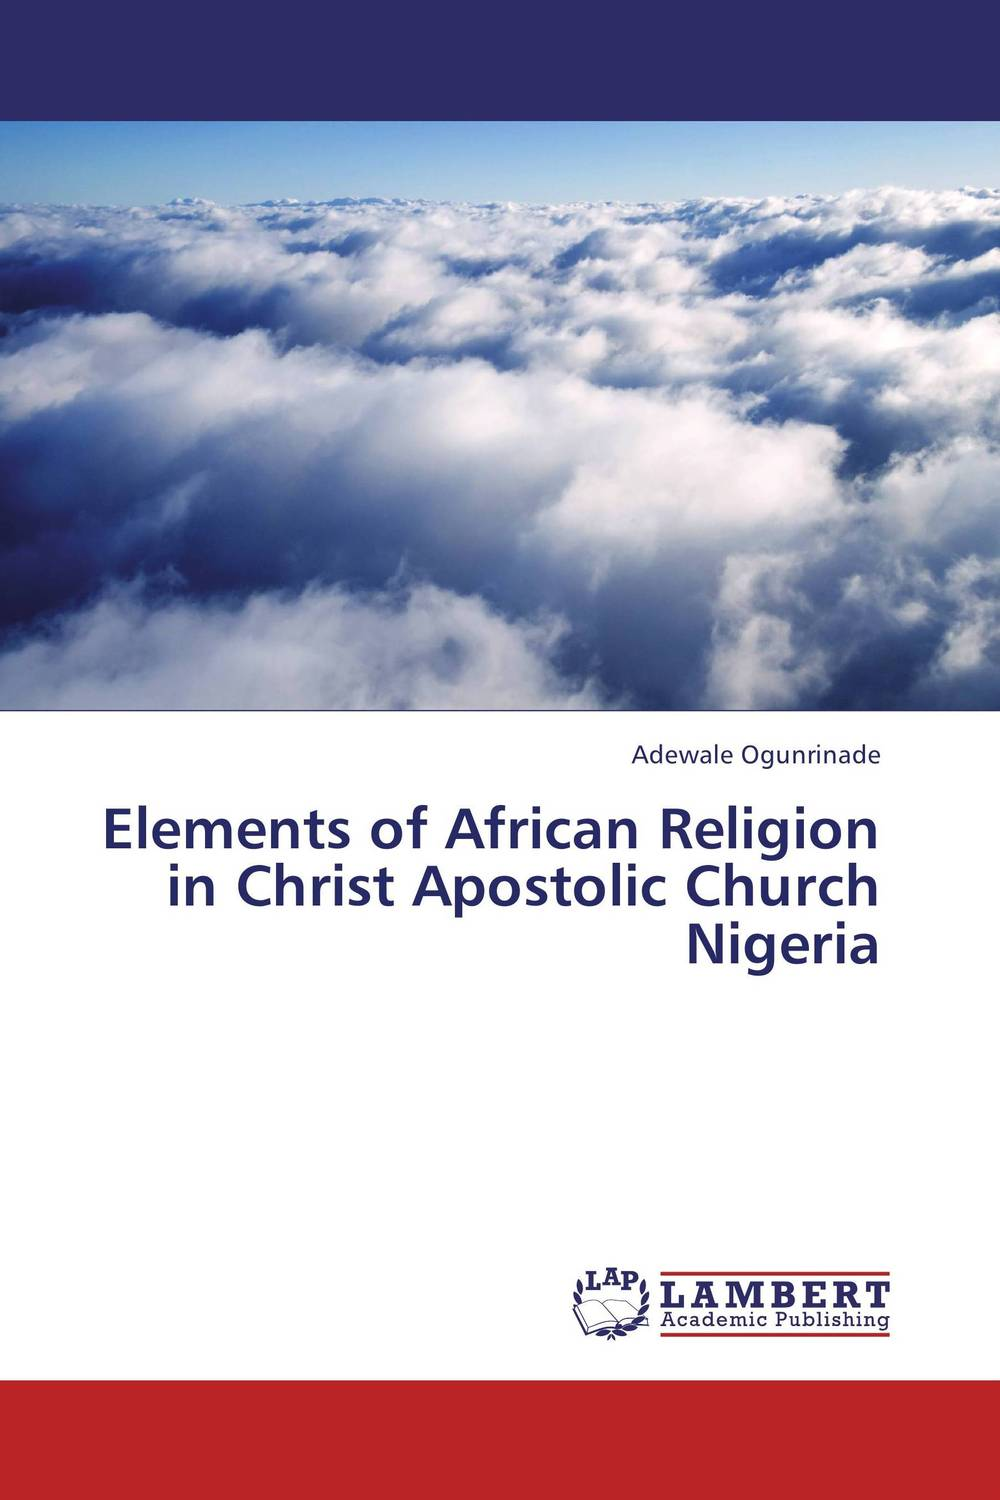 Elements of African Religion in Christ Apostolic Church Nigeria phillip d mazambara the vitality of african indigenous religion